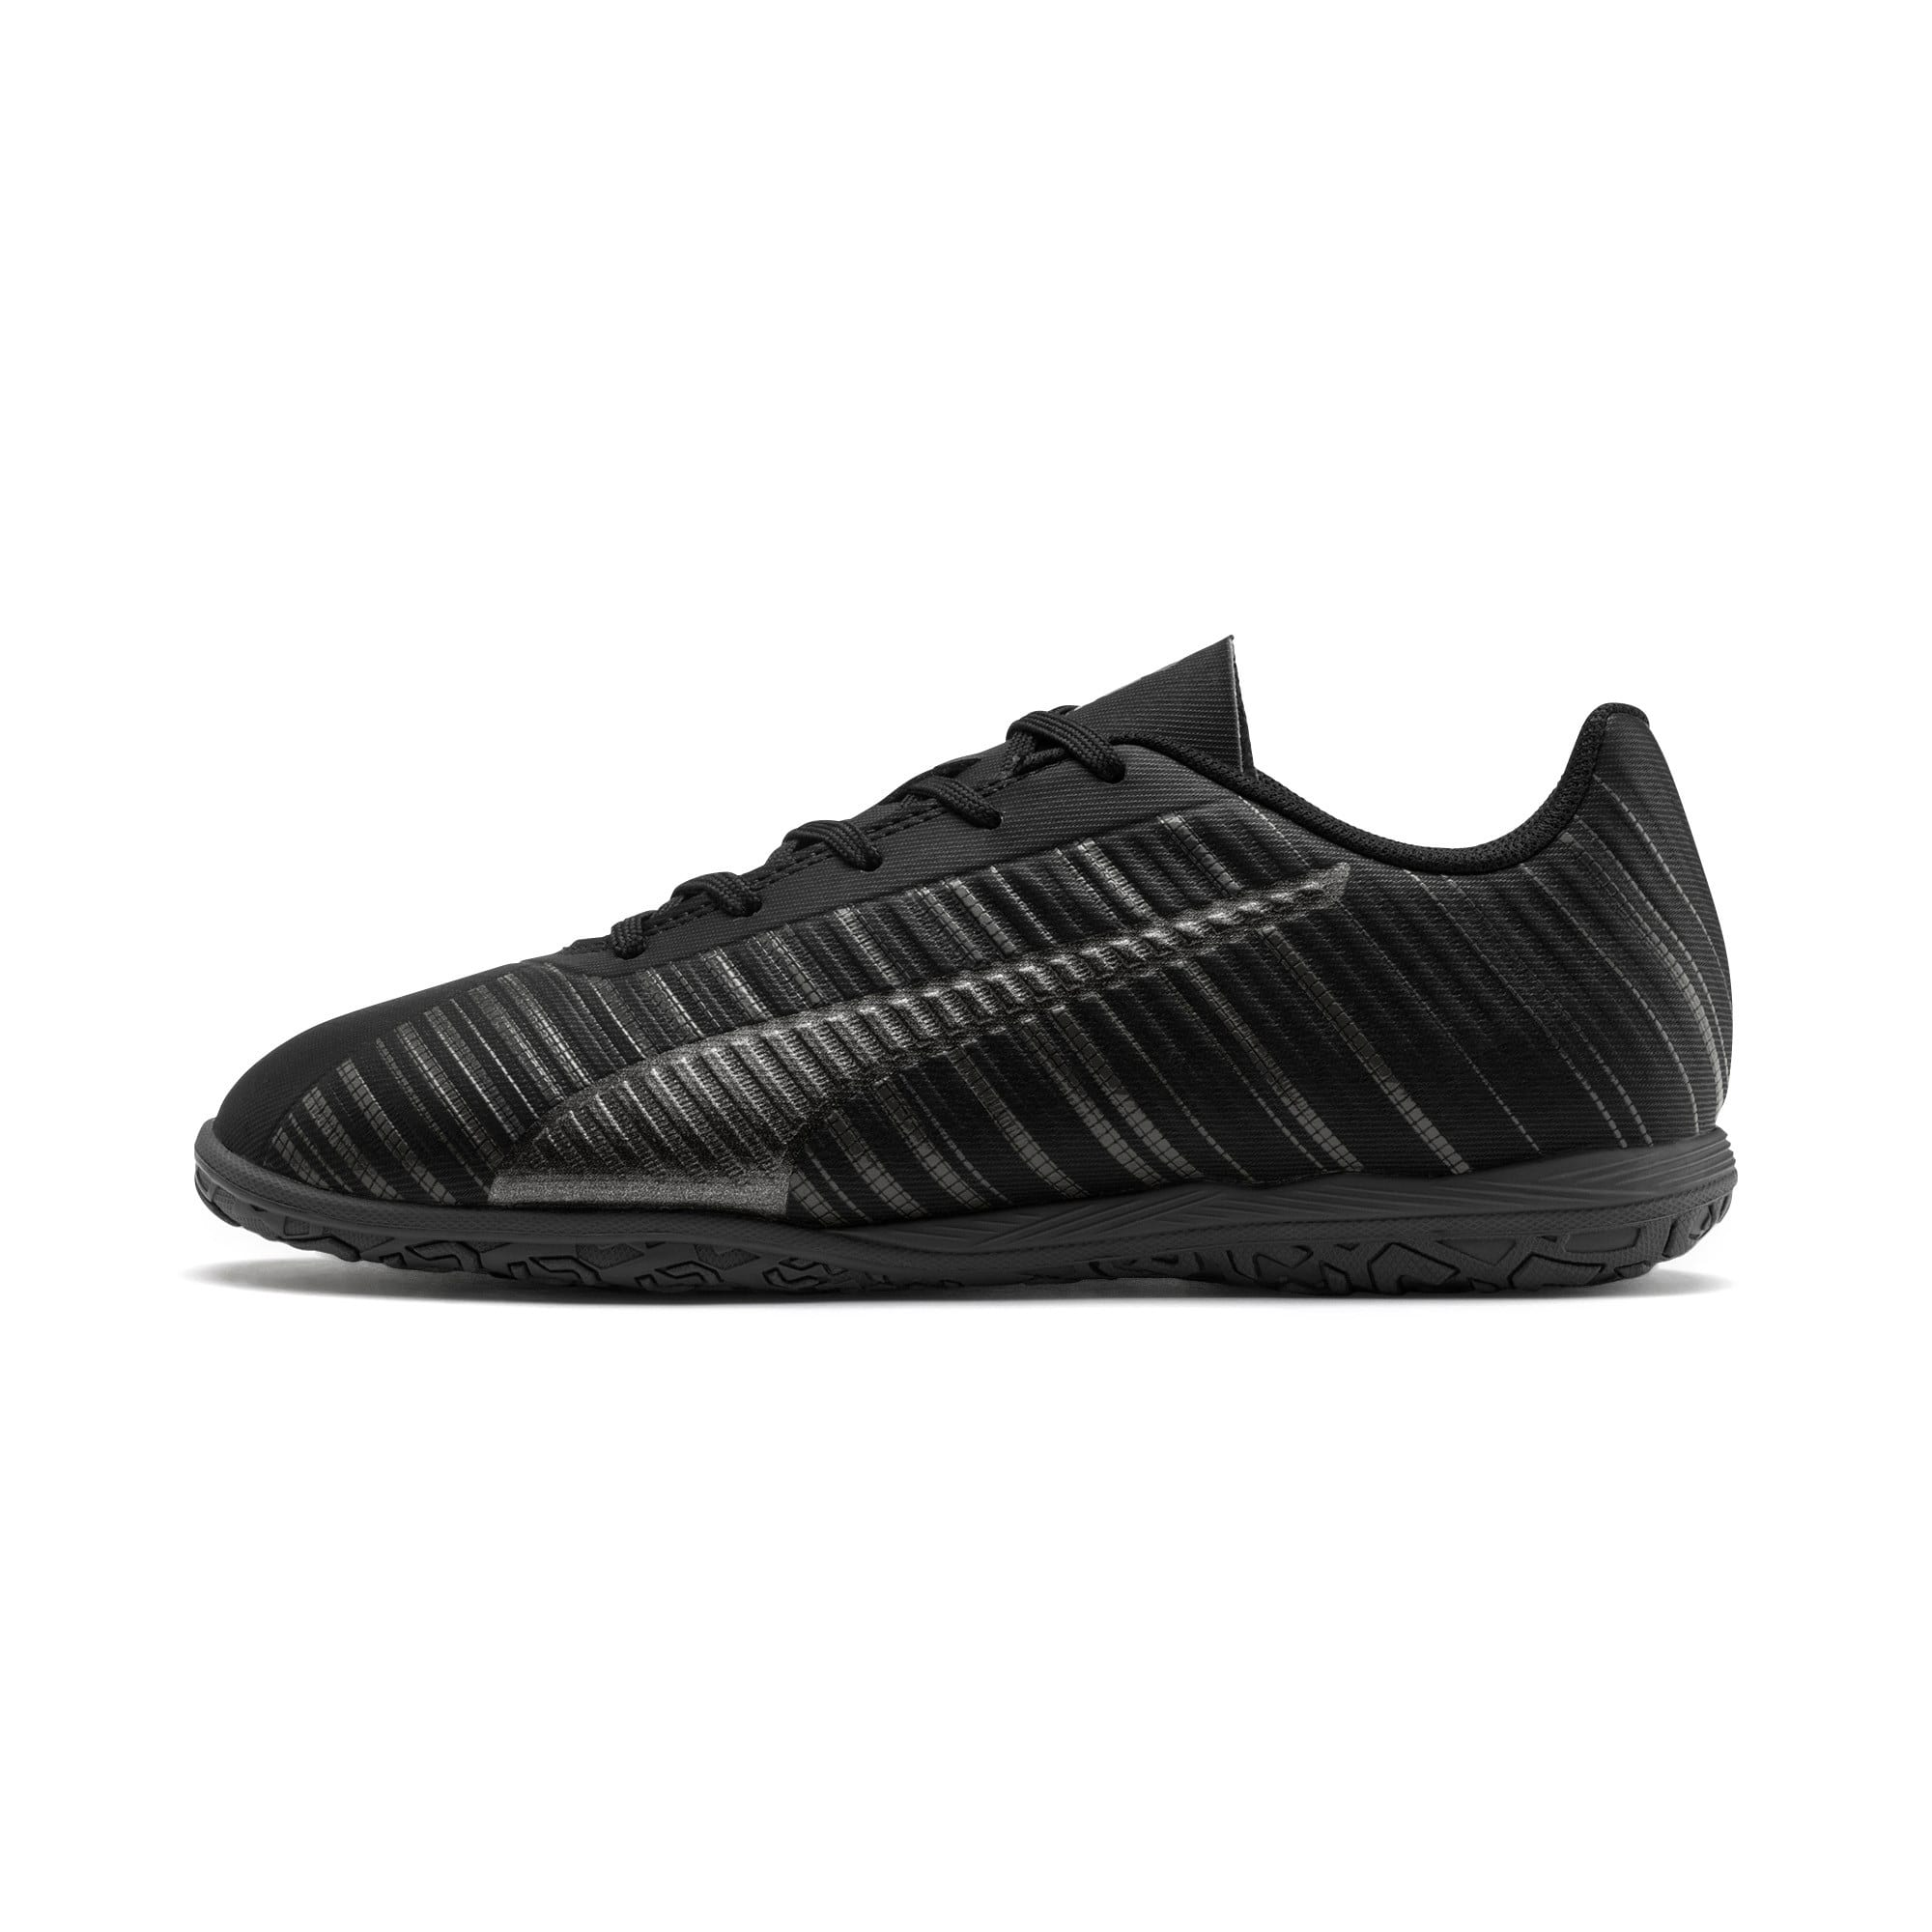 Thumbnail 1 of PUMA ONE 5.4 IT Youth Fußballschuhe, Black-Black-Puma Aged Silver, medium